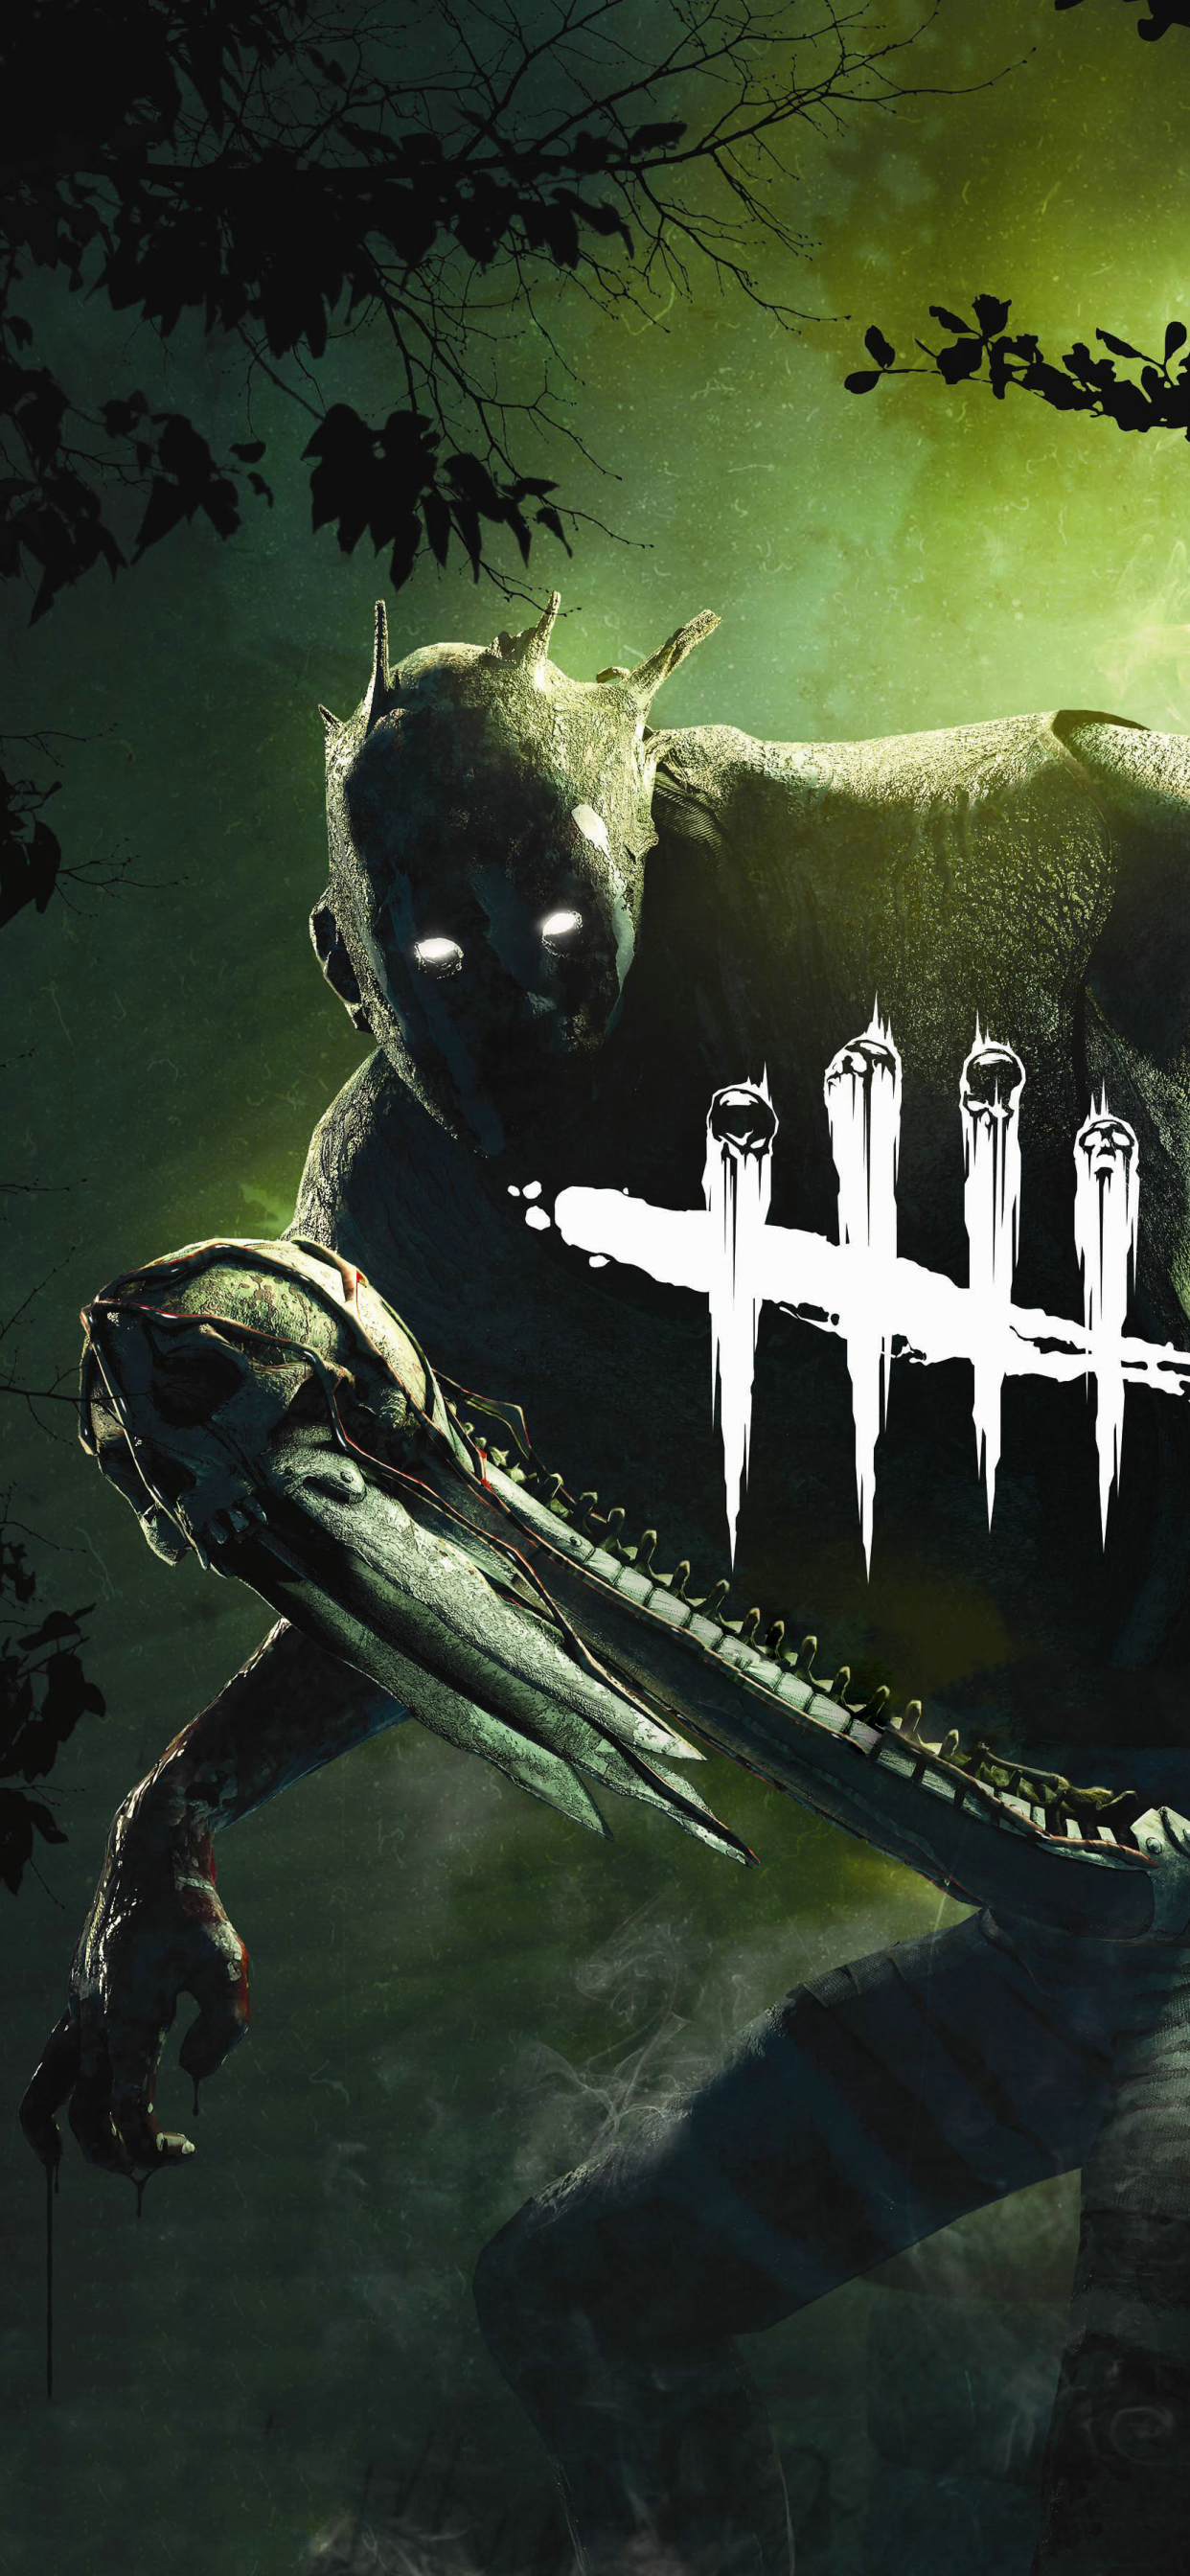 1242x2688 Killer Wraith Dead By Daylight Iphone Xs Max Wallpaper